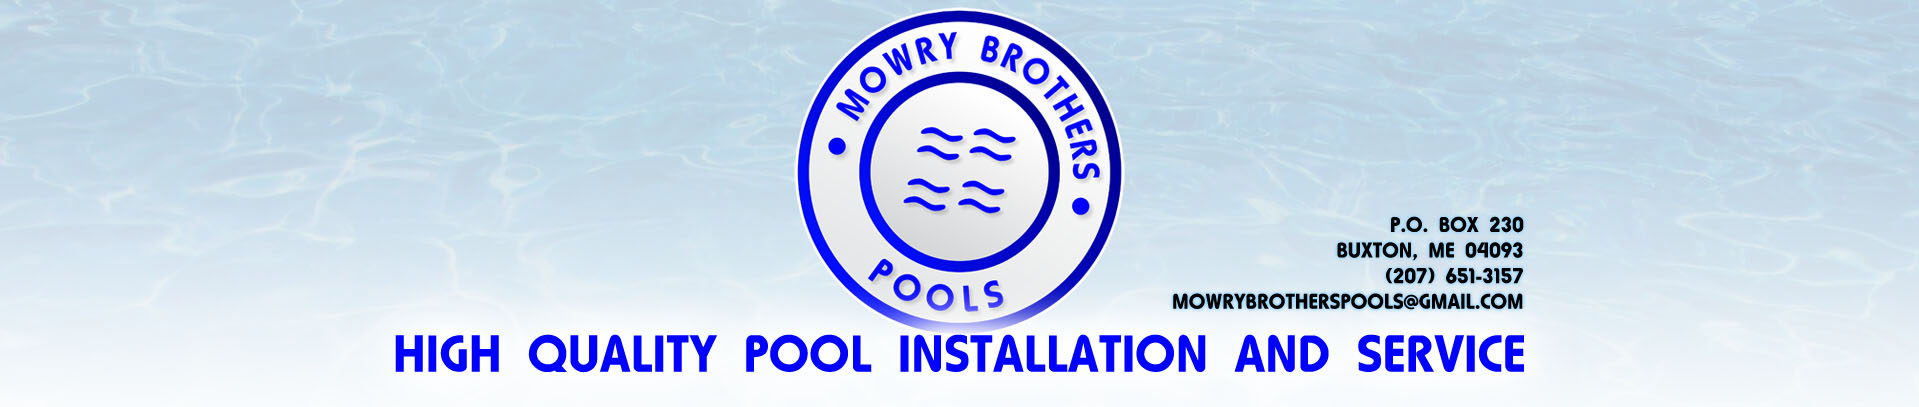 Mowry Brothers Pools